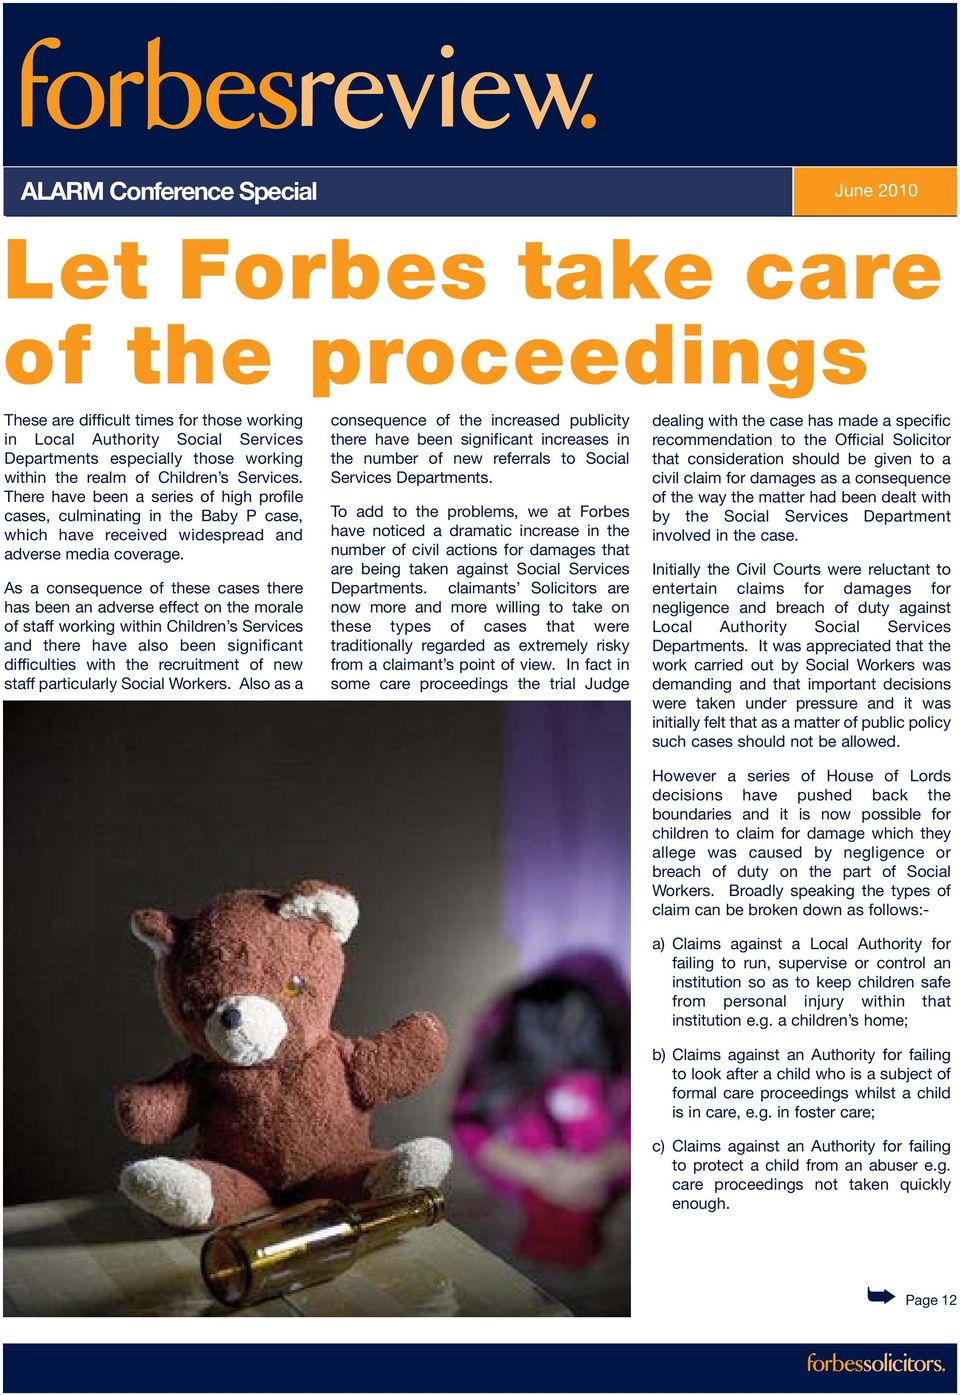 As a consequence of these cases there has been an adverse effect on the morale of staff working within Children s Services and there have also been significant difficulties with the recruitment of